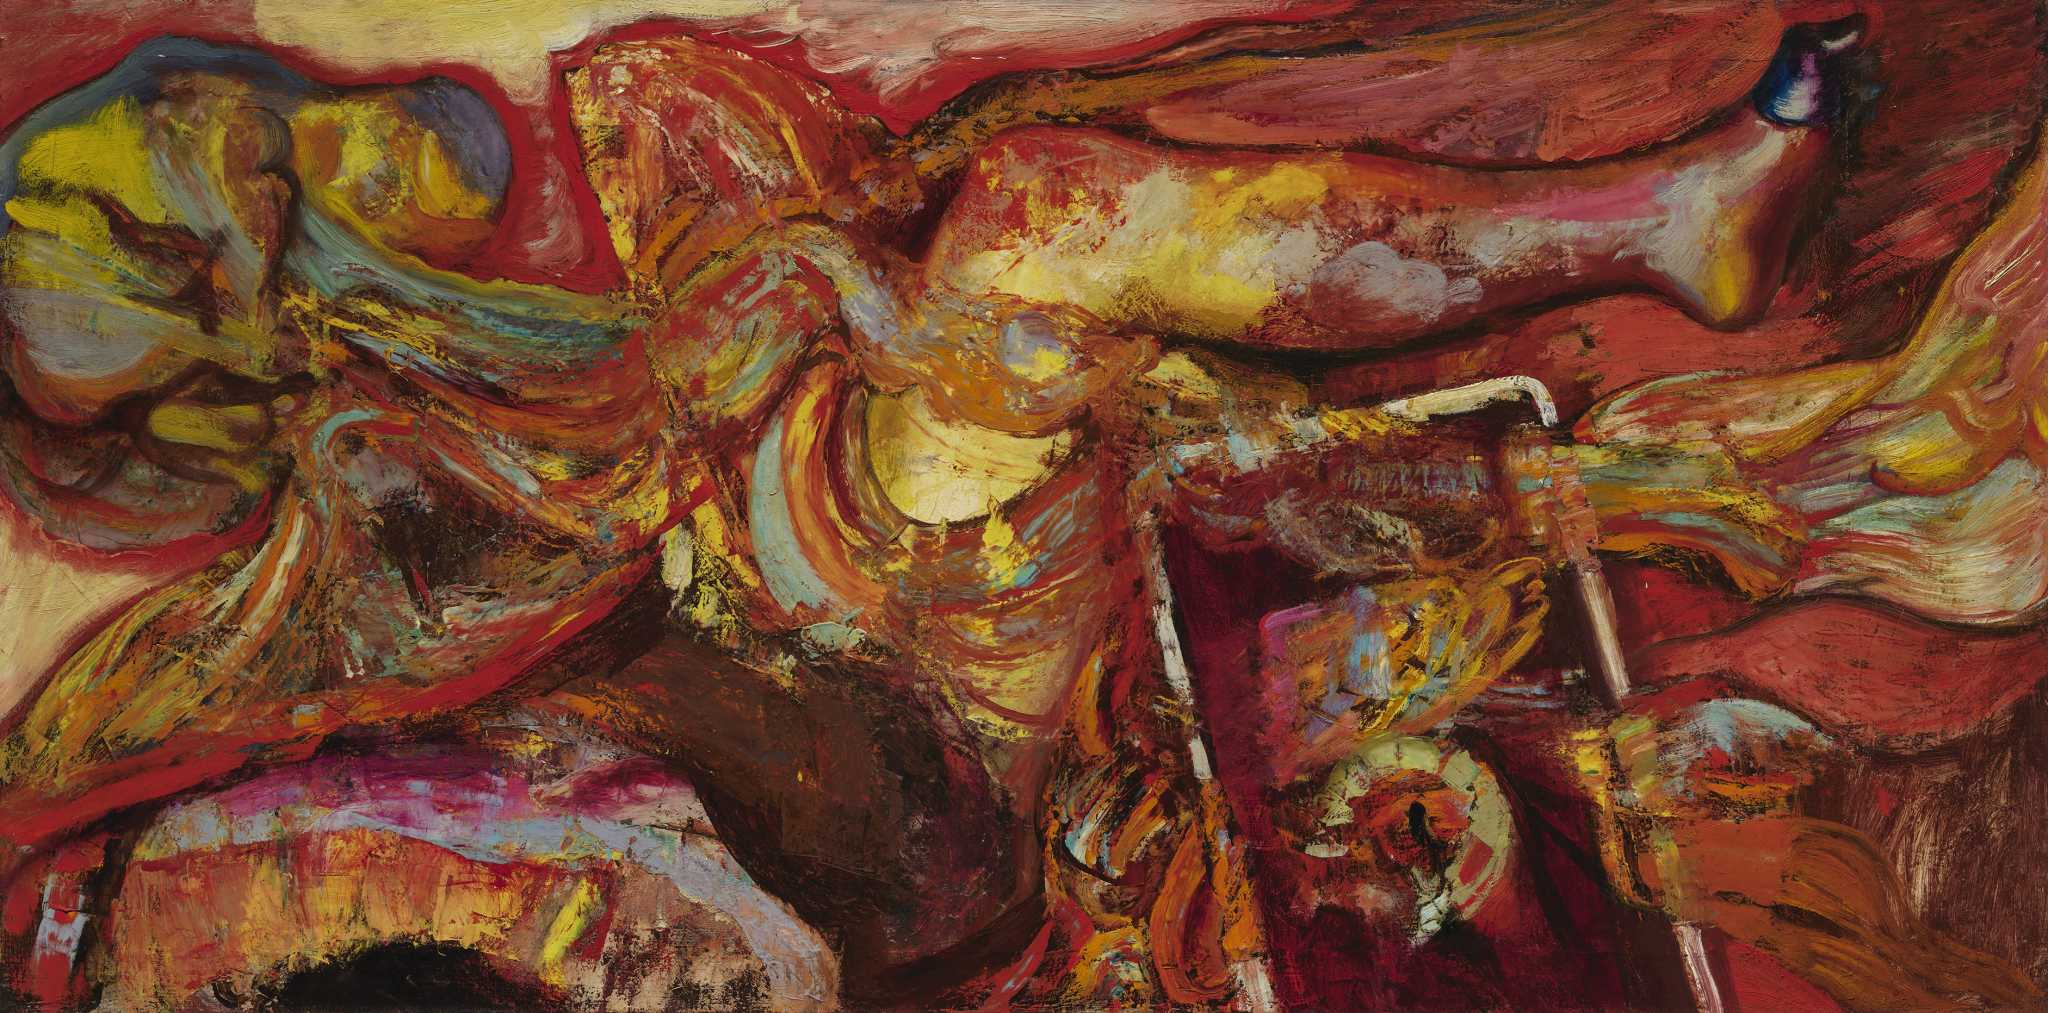 In artist Hyman Bloom's revered body of work, the bodies were cadavers